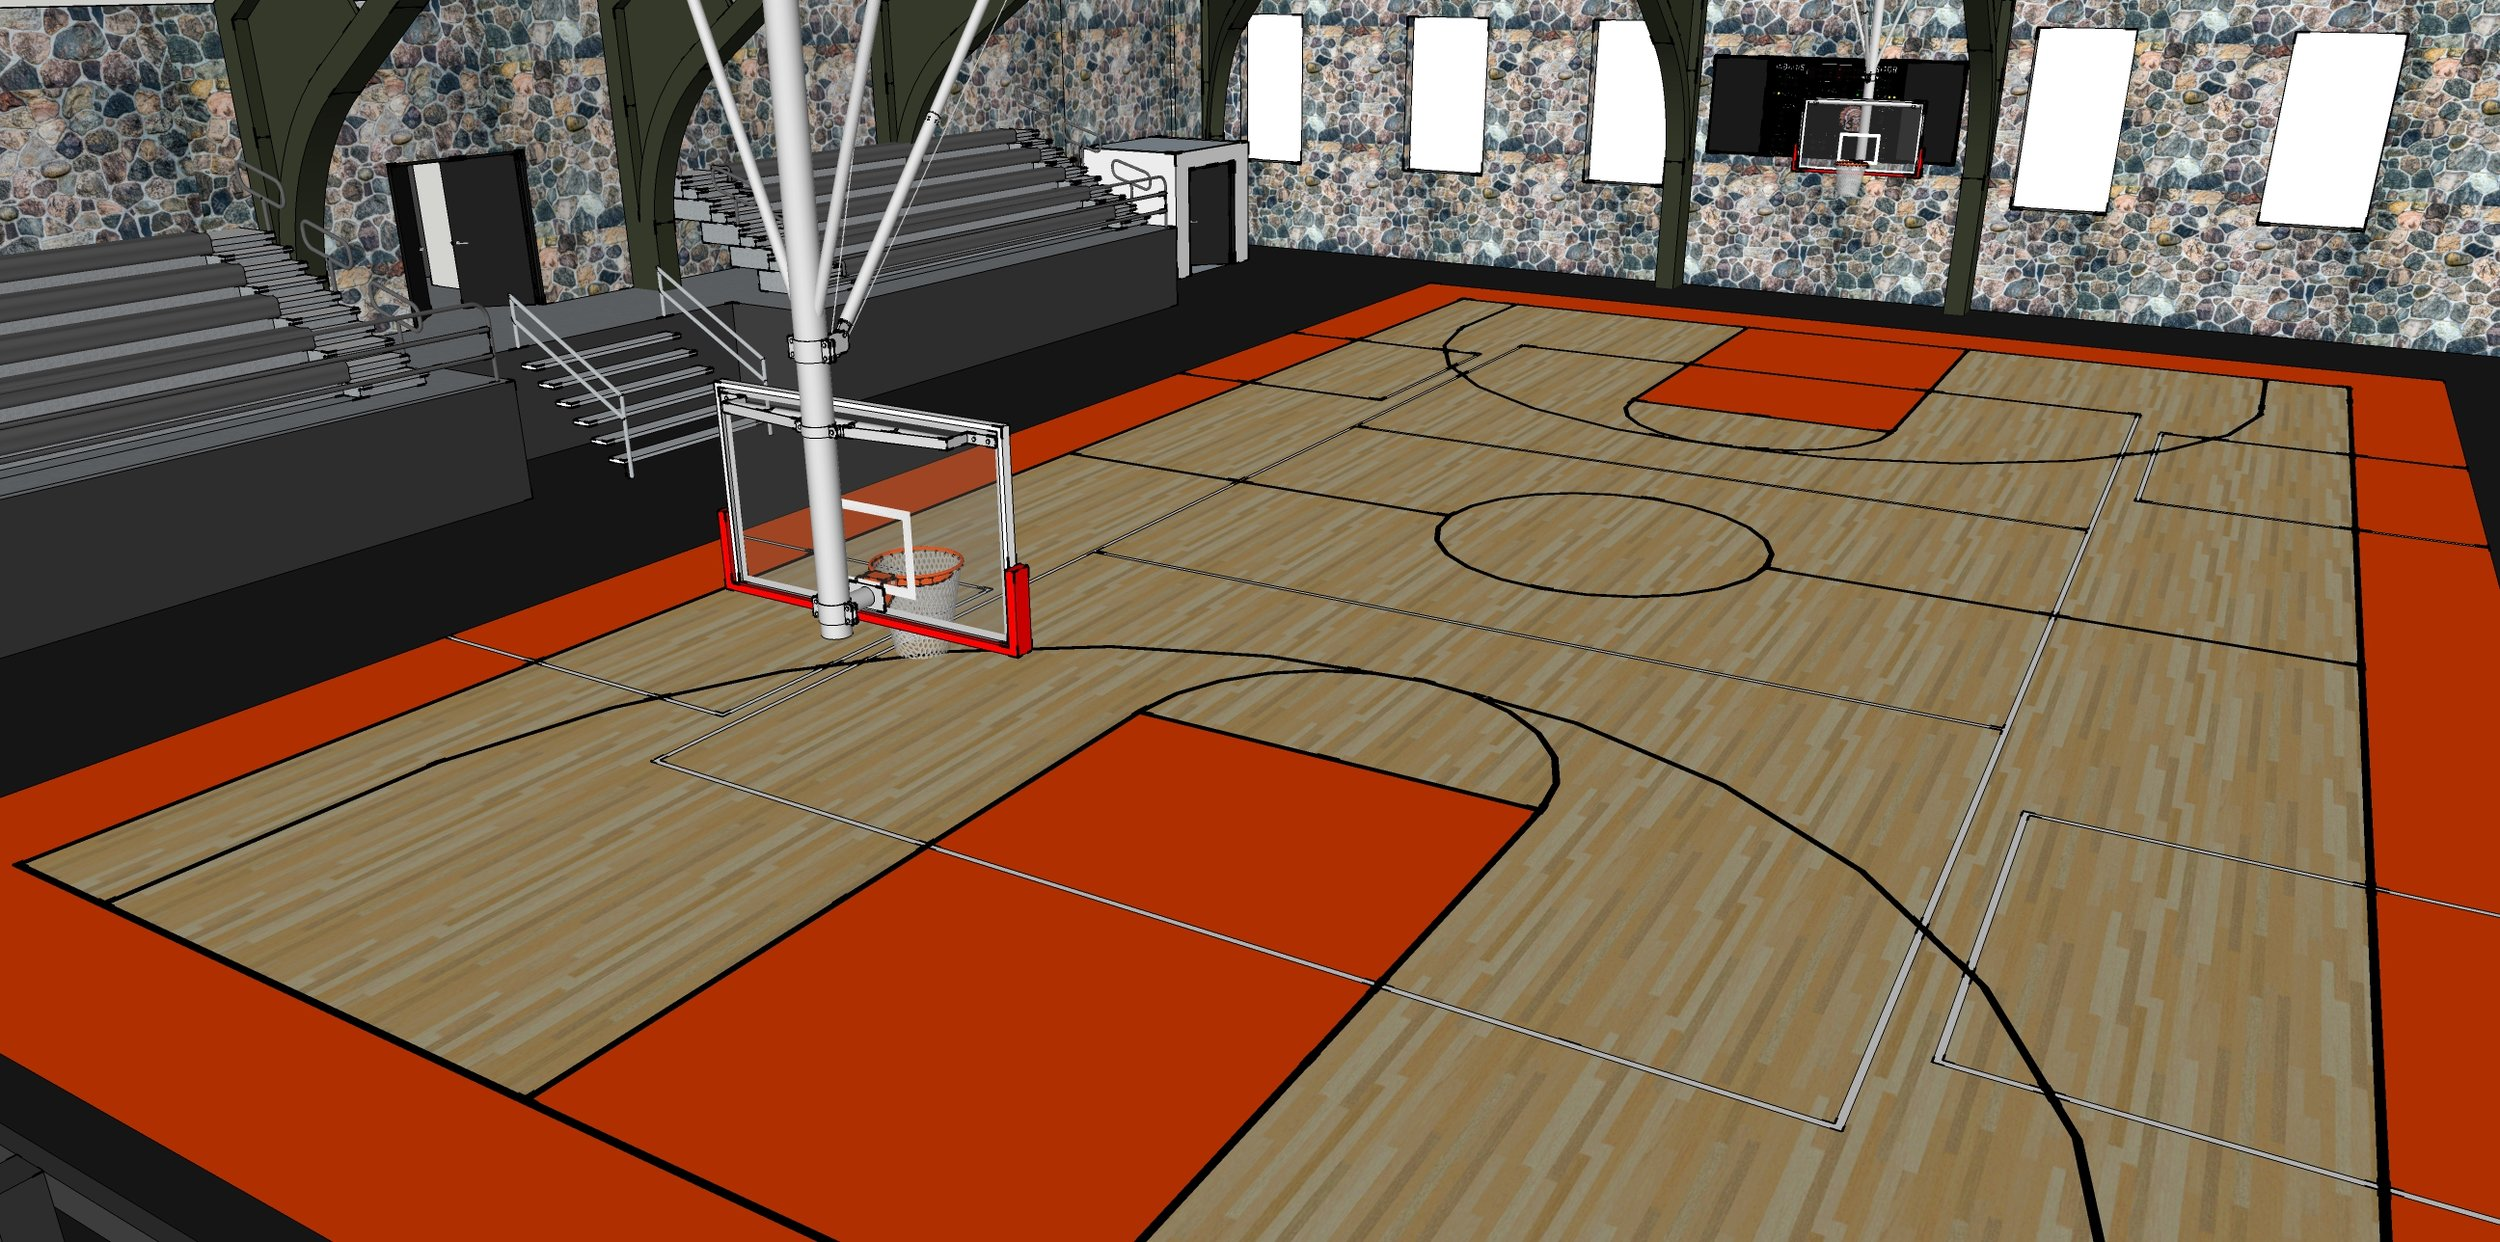 In addition to the new multi-sport court, we plan to add hydraulic basketball hoops, scoreboard, bleachers, and netting on each end.